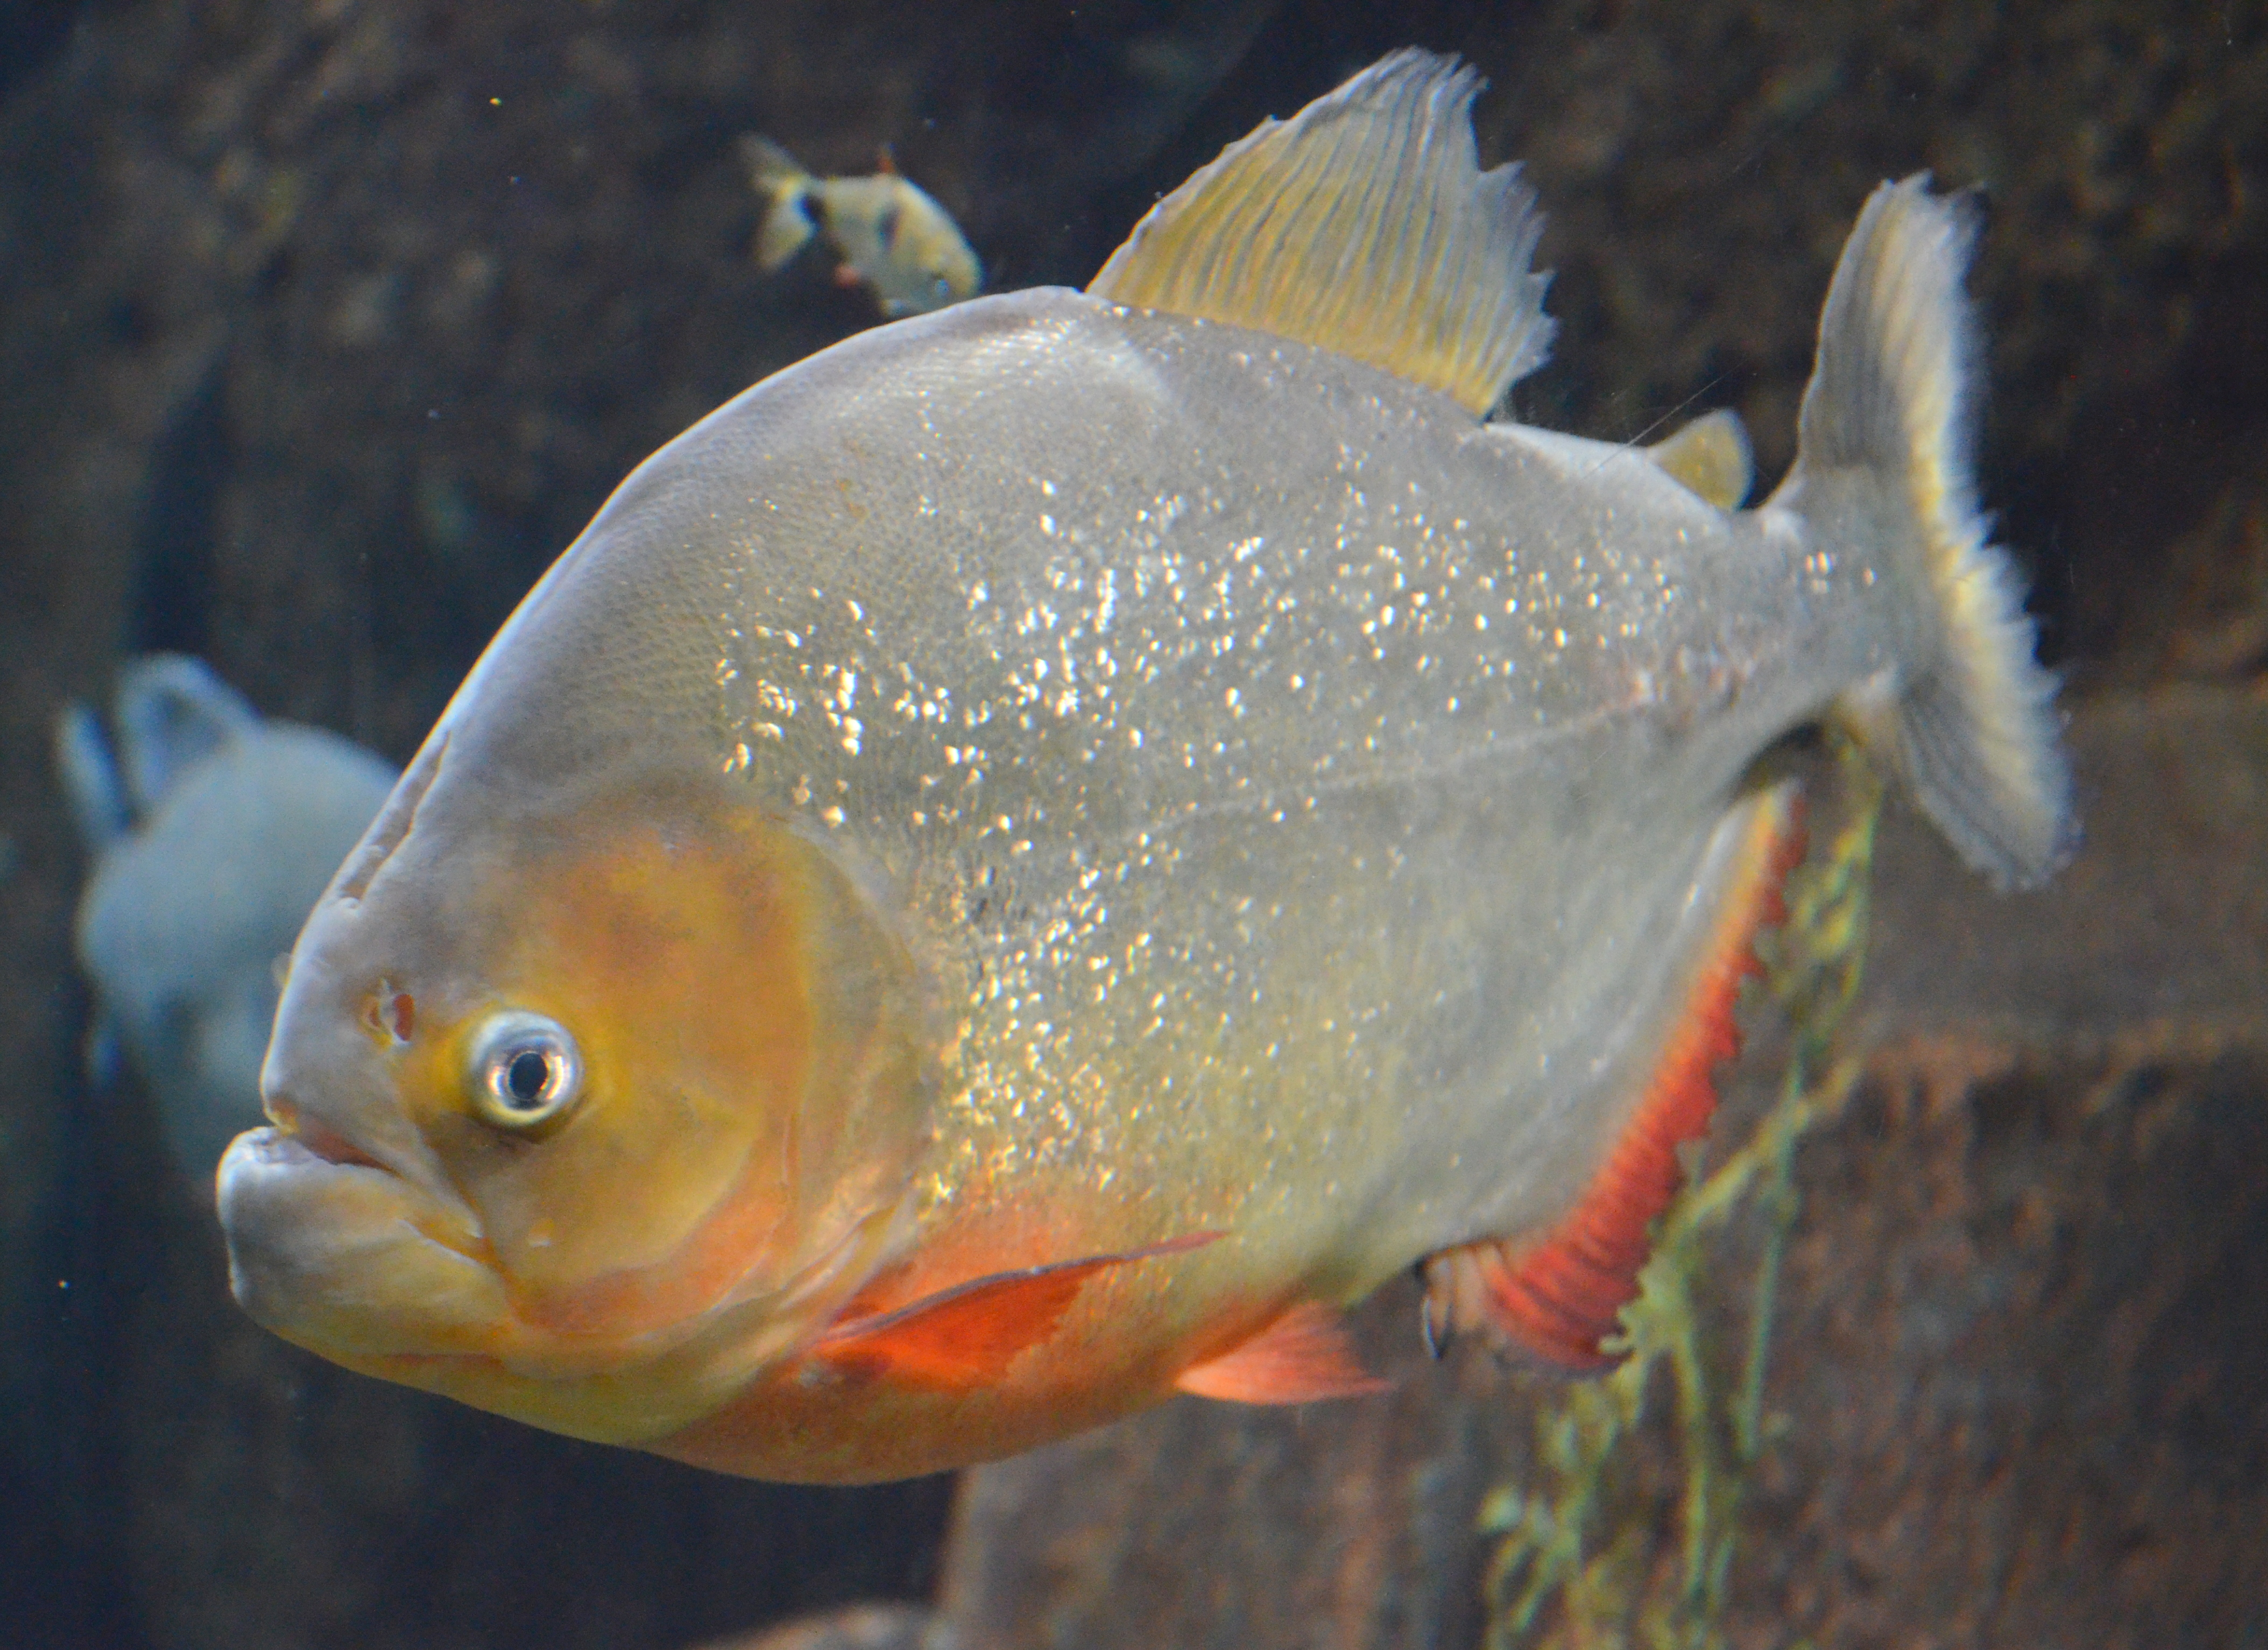 Piranhas Wikiwand HD Wallpapers Download free images and photos [musssic.tk]